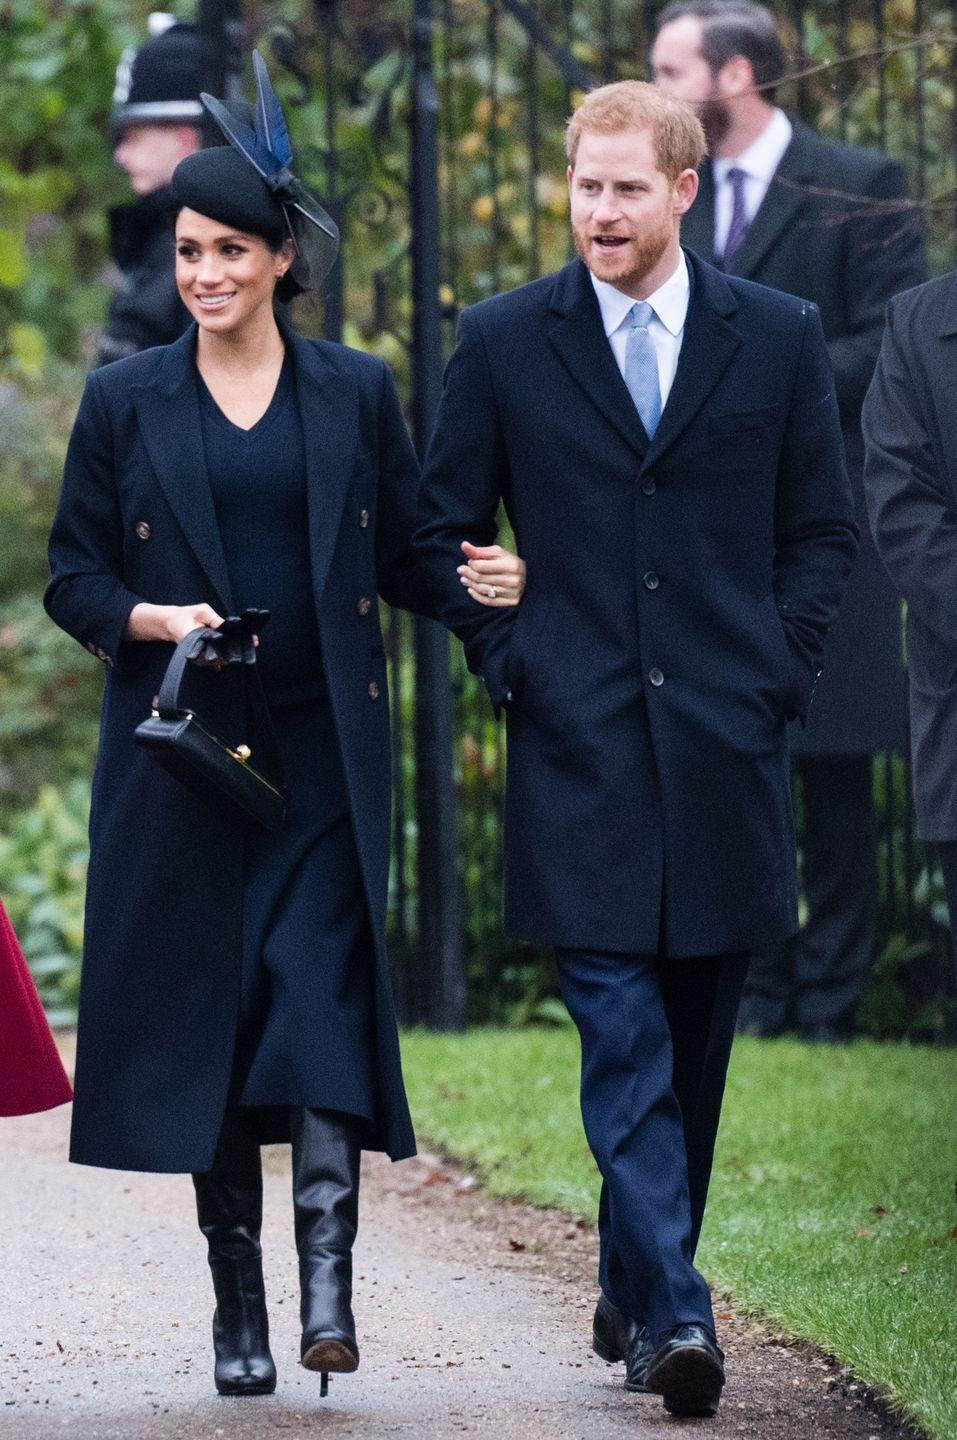 <p>Prince Harry walks arm in arm with Meghan Markle as they make their way into Christmas Day church services. </p>